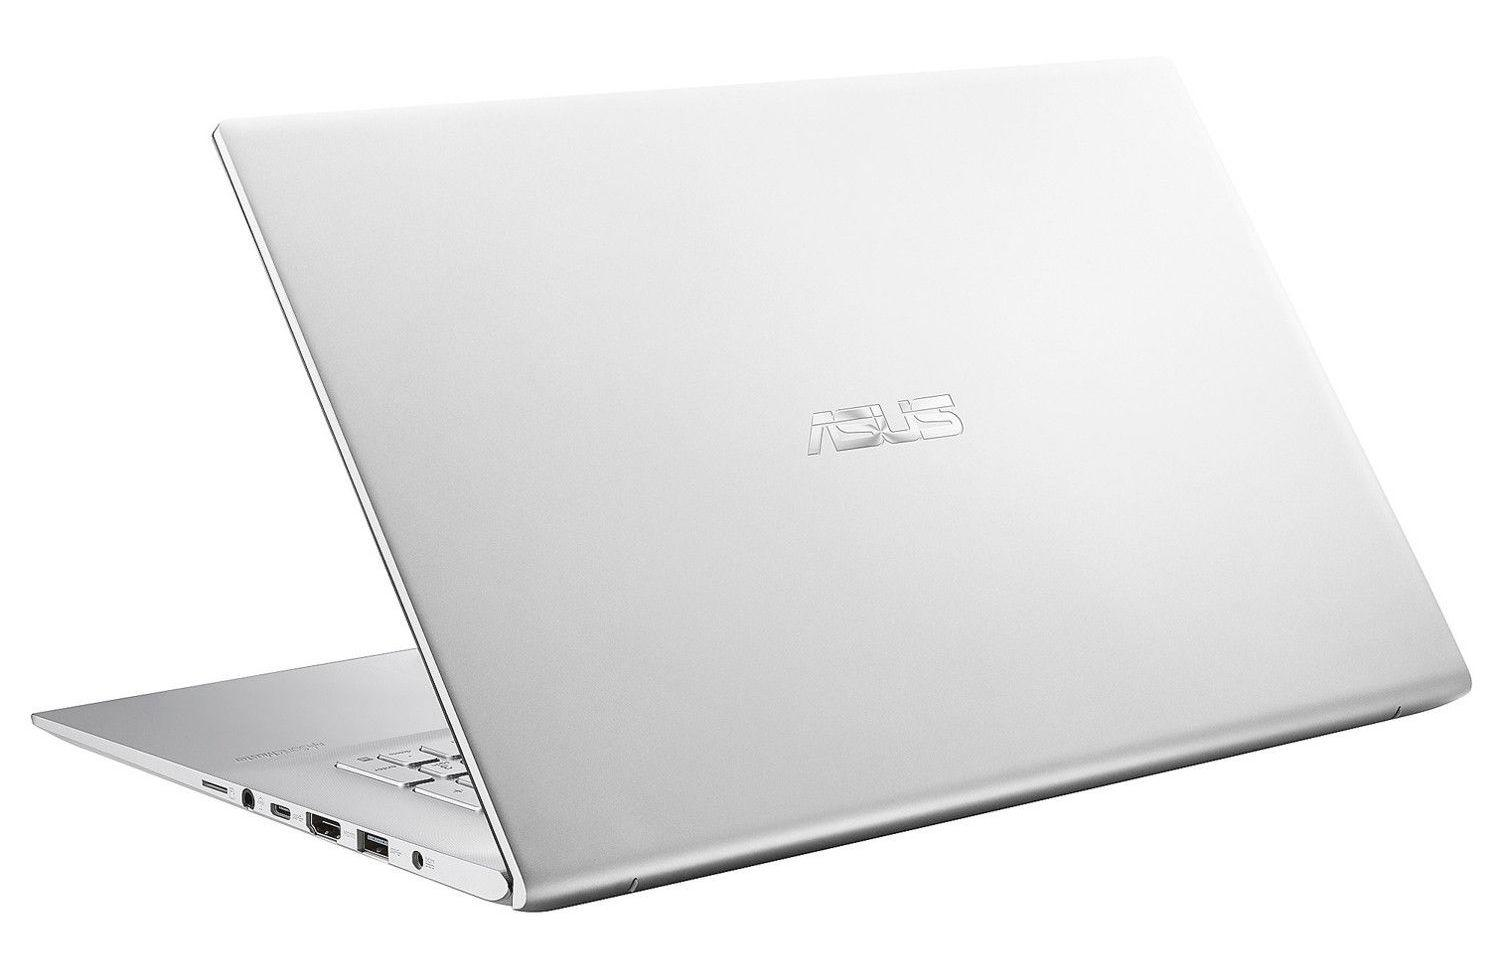 Ordinateur portable Asus VivoBook X712FB-AU168T Argent - SSD 512 Go, MX110 - photo 4